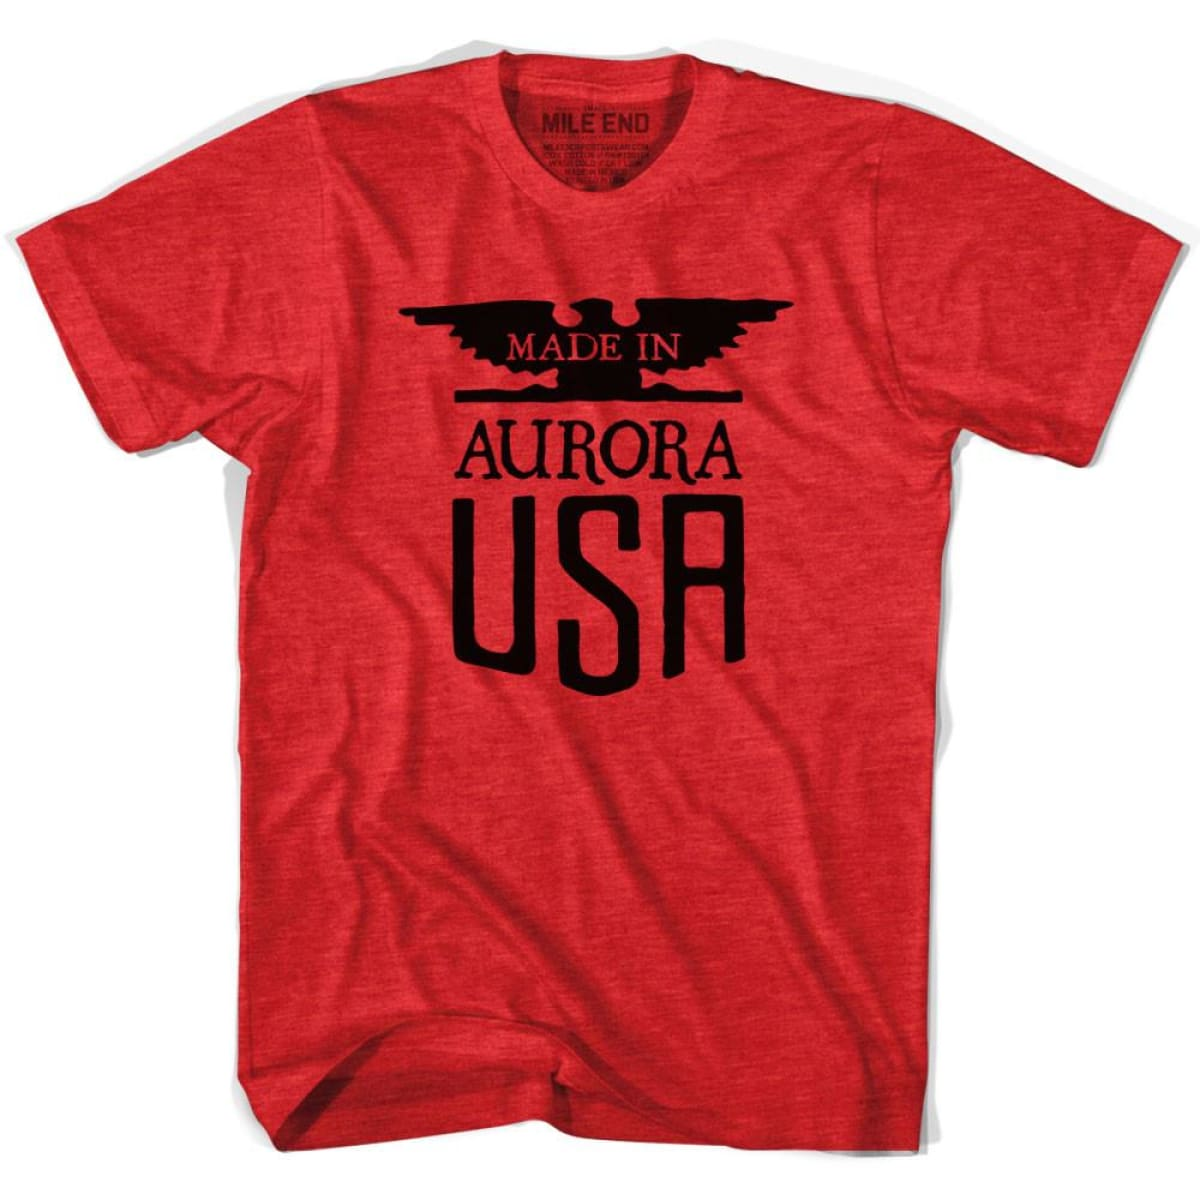 Made In USA Aurora Vintage Eagle T-shirt - Heather Red / Adult Small - Made in Eagle